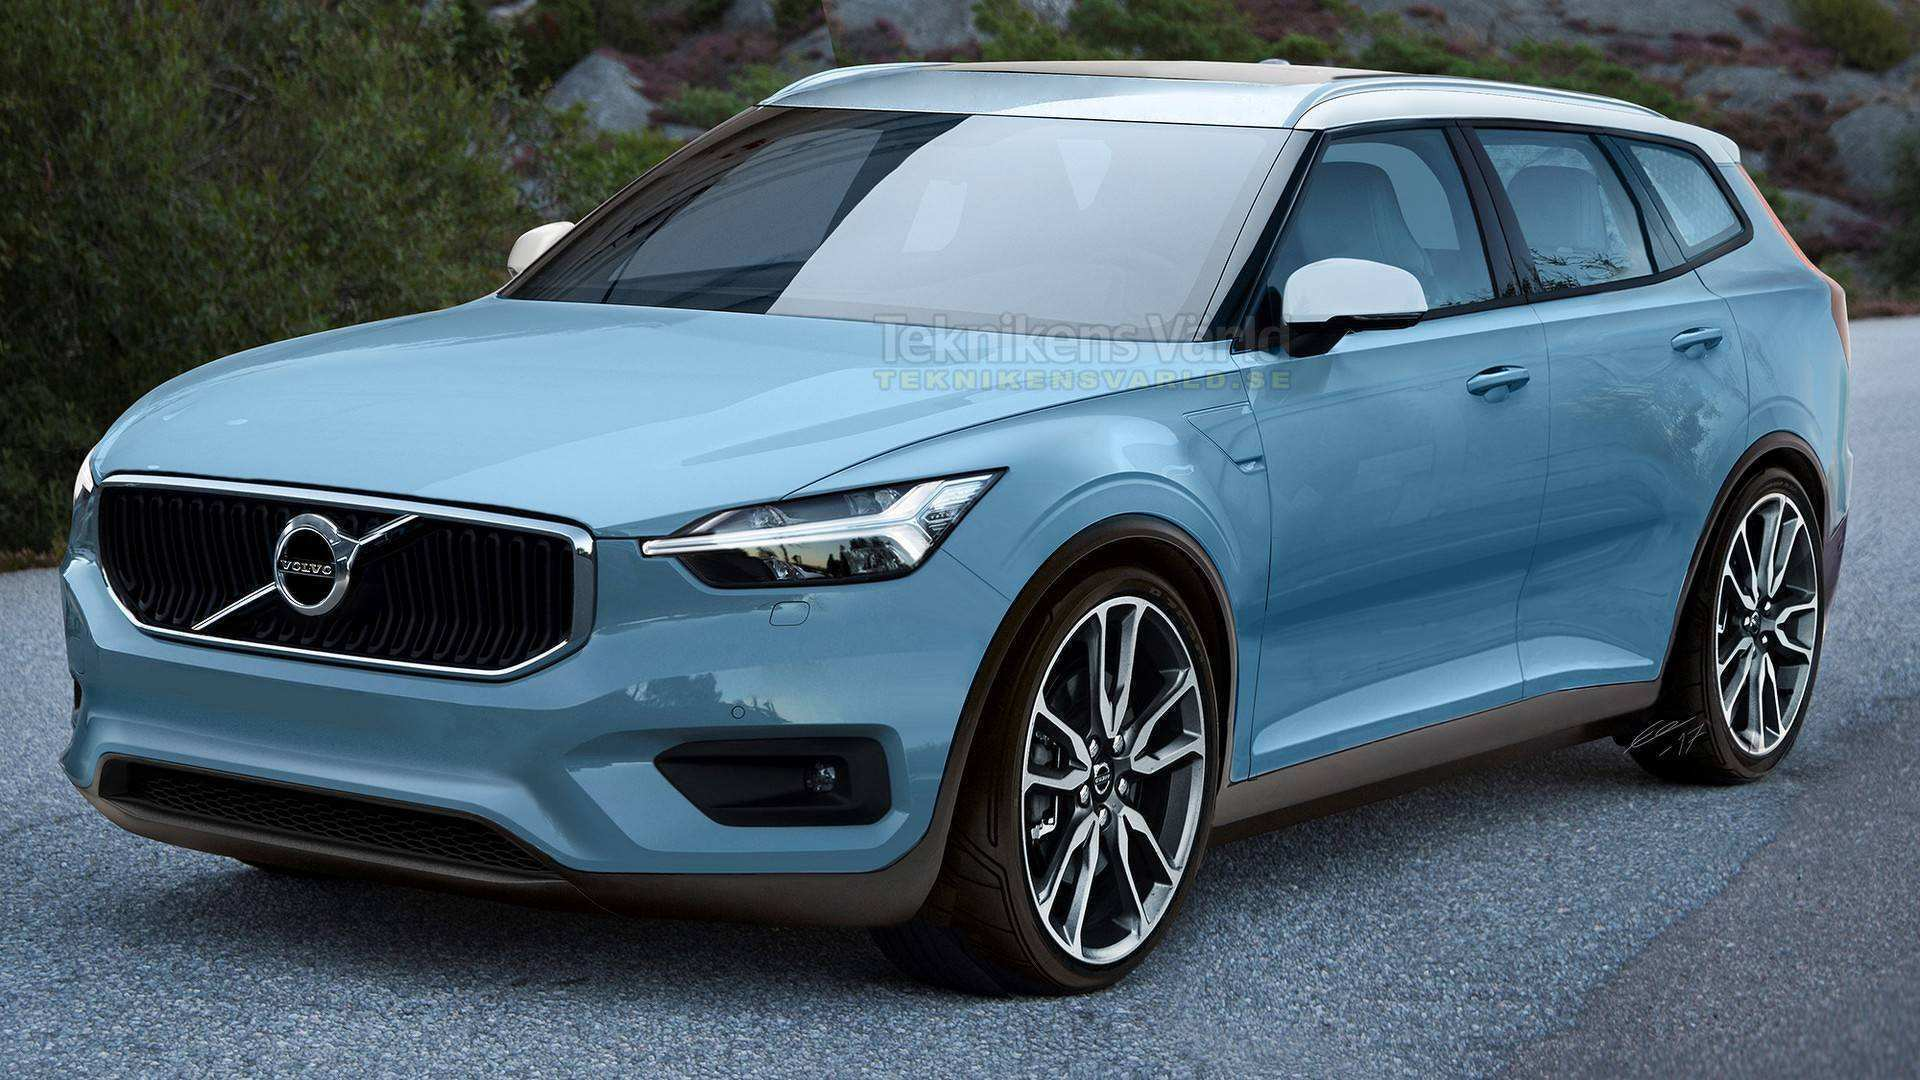 61 The Best 2020 Volvo S40 Release Date